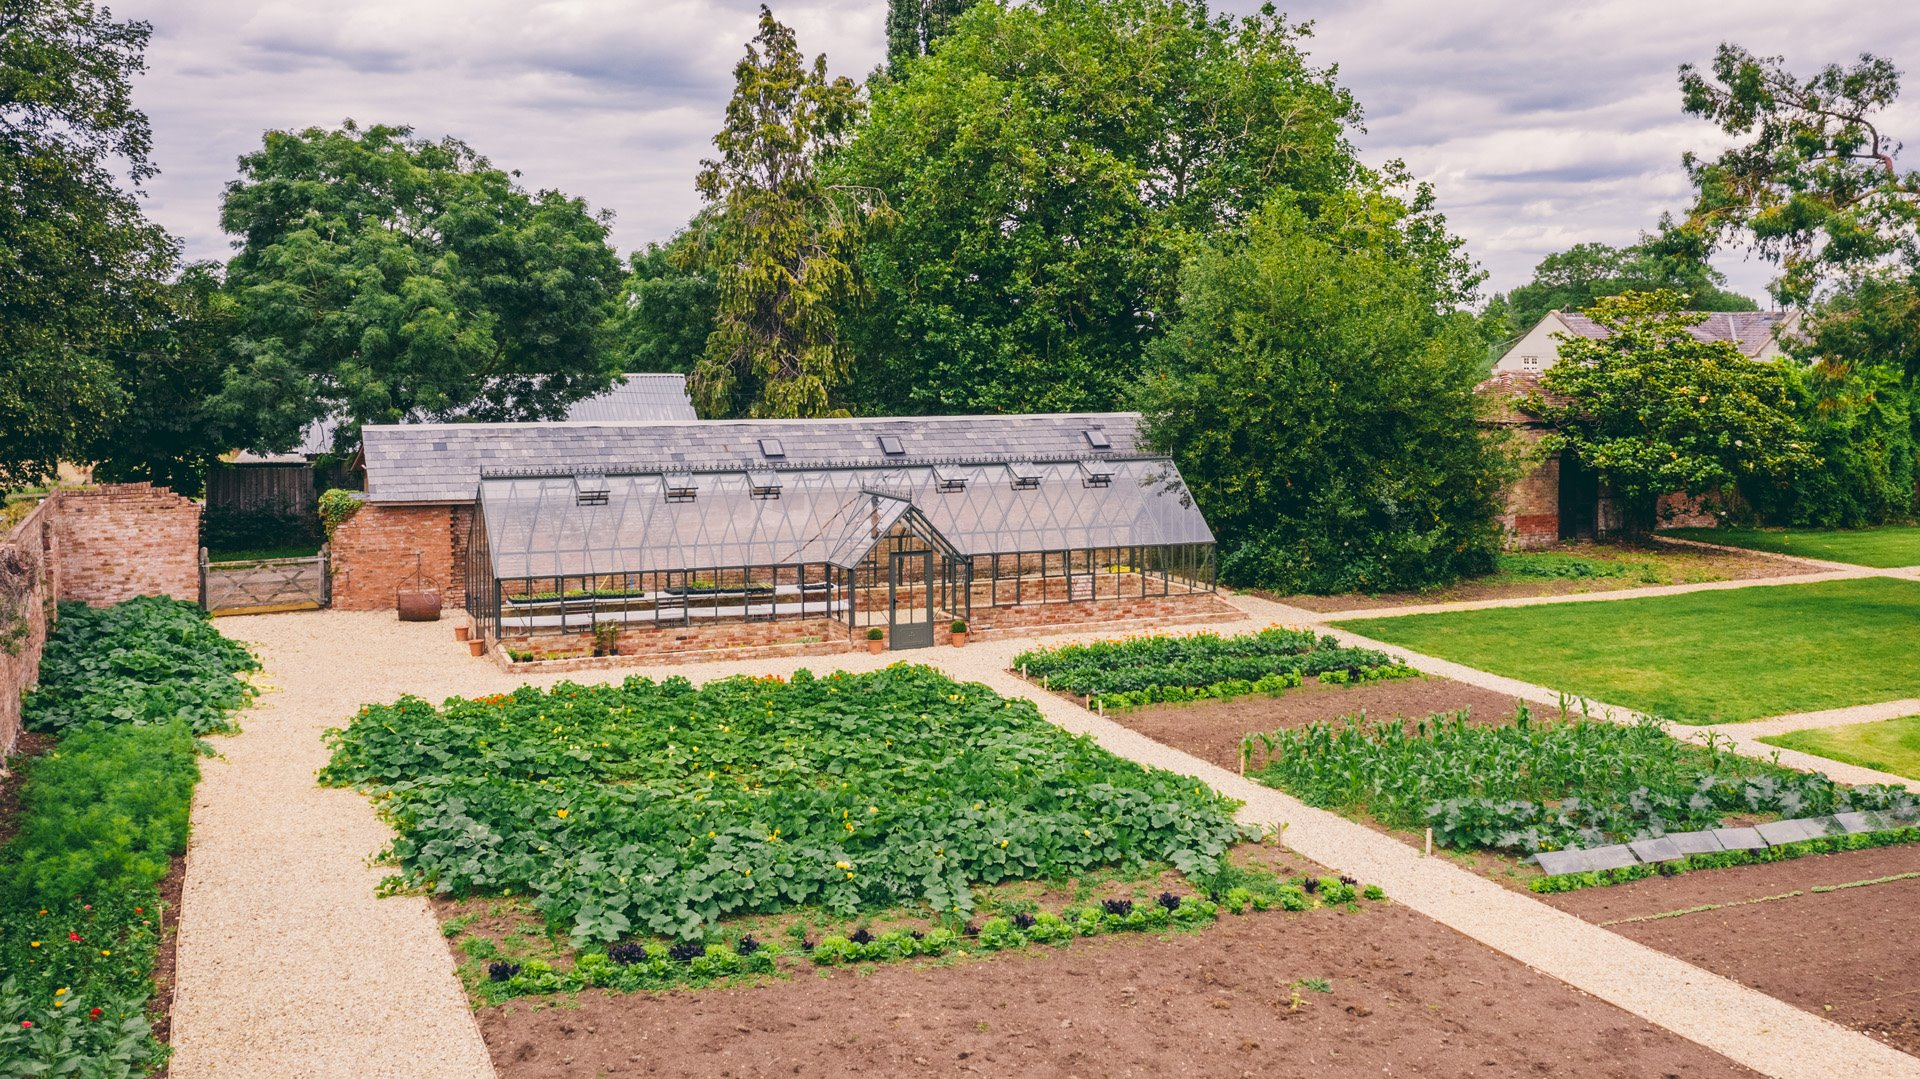 Walled garden for home grown wedding food at sustainable venue elmore court